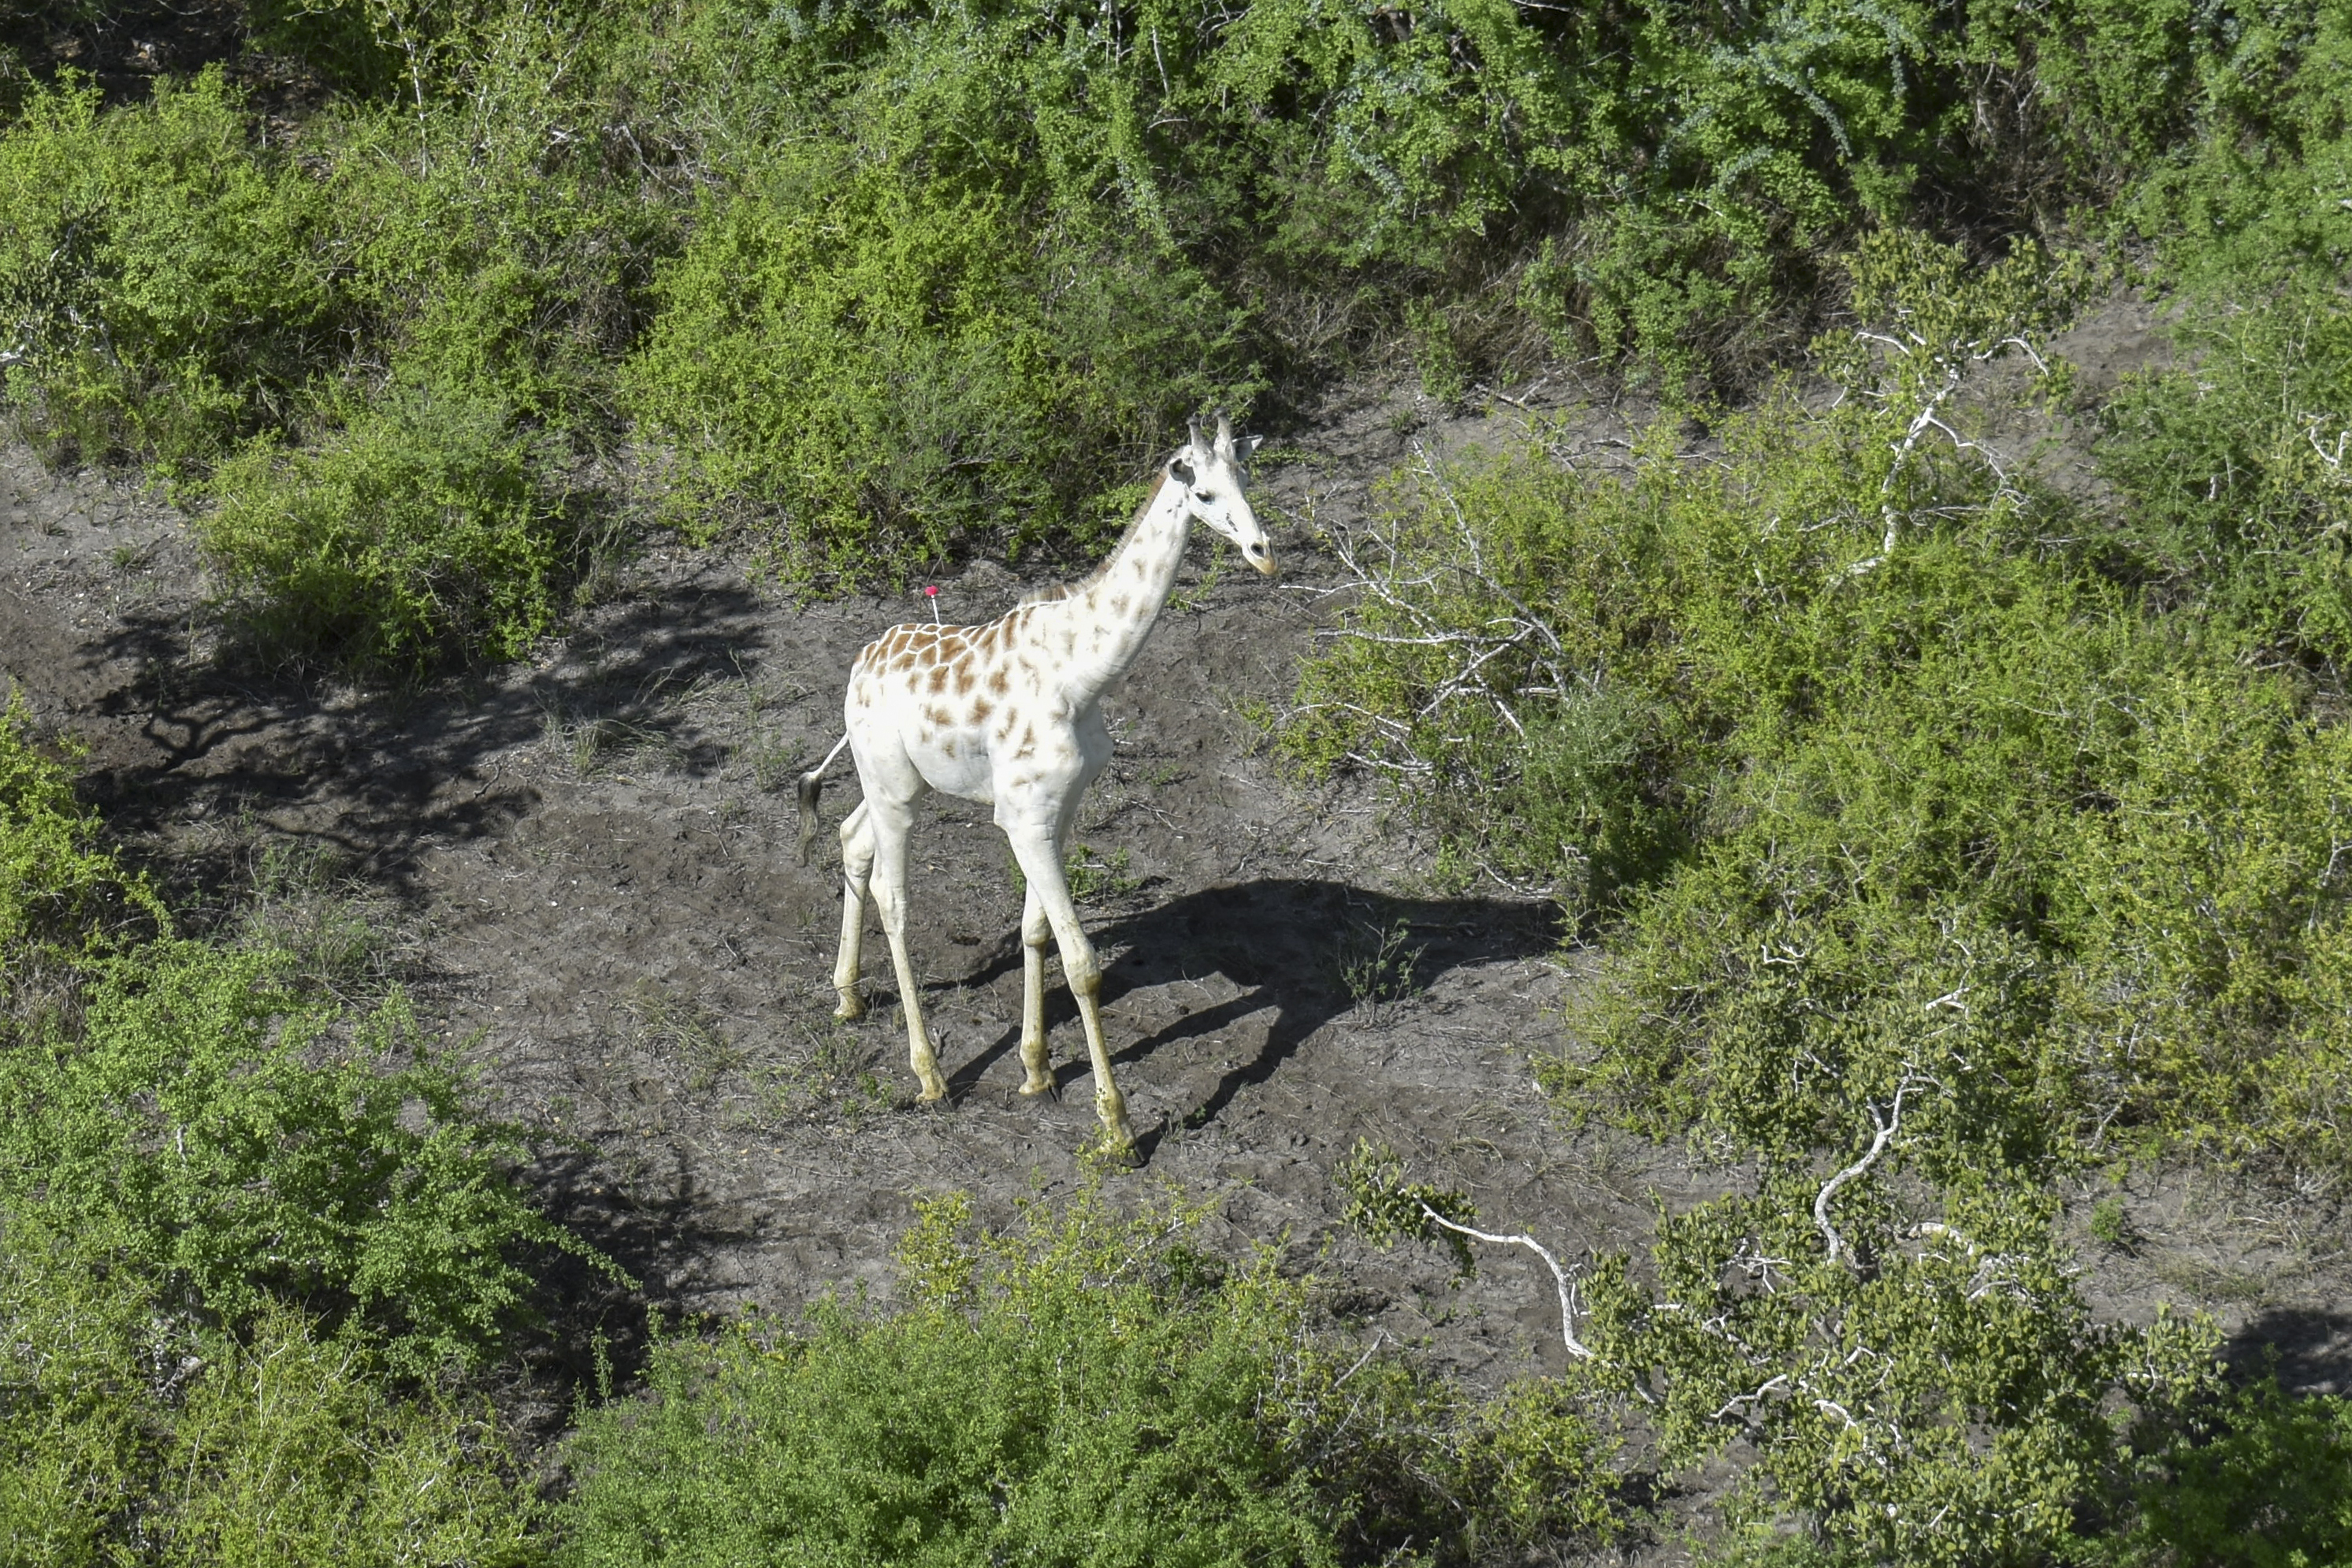 A male giraffe with a rare genetic trait called leucism that causes a white colour